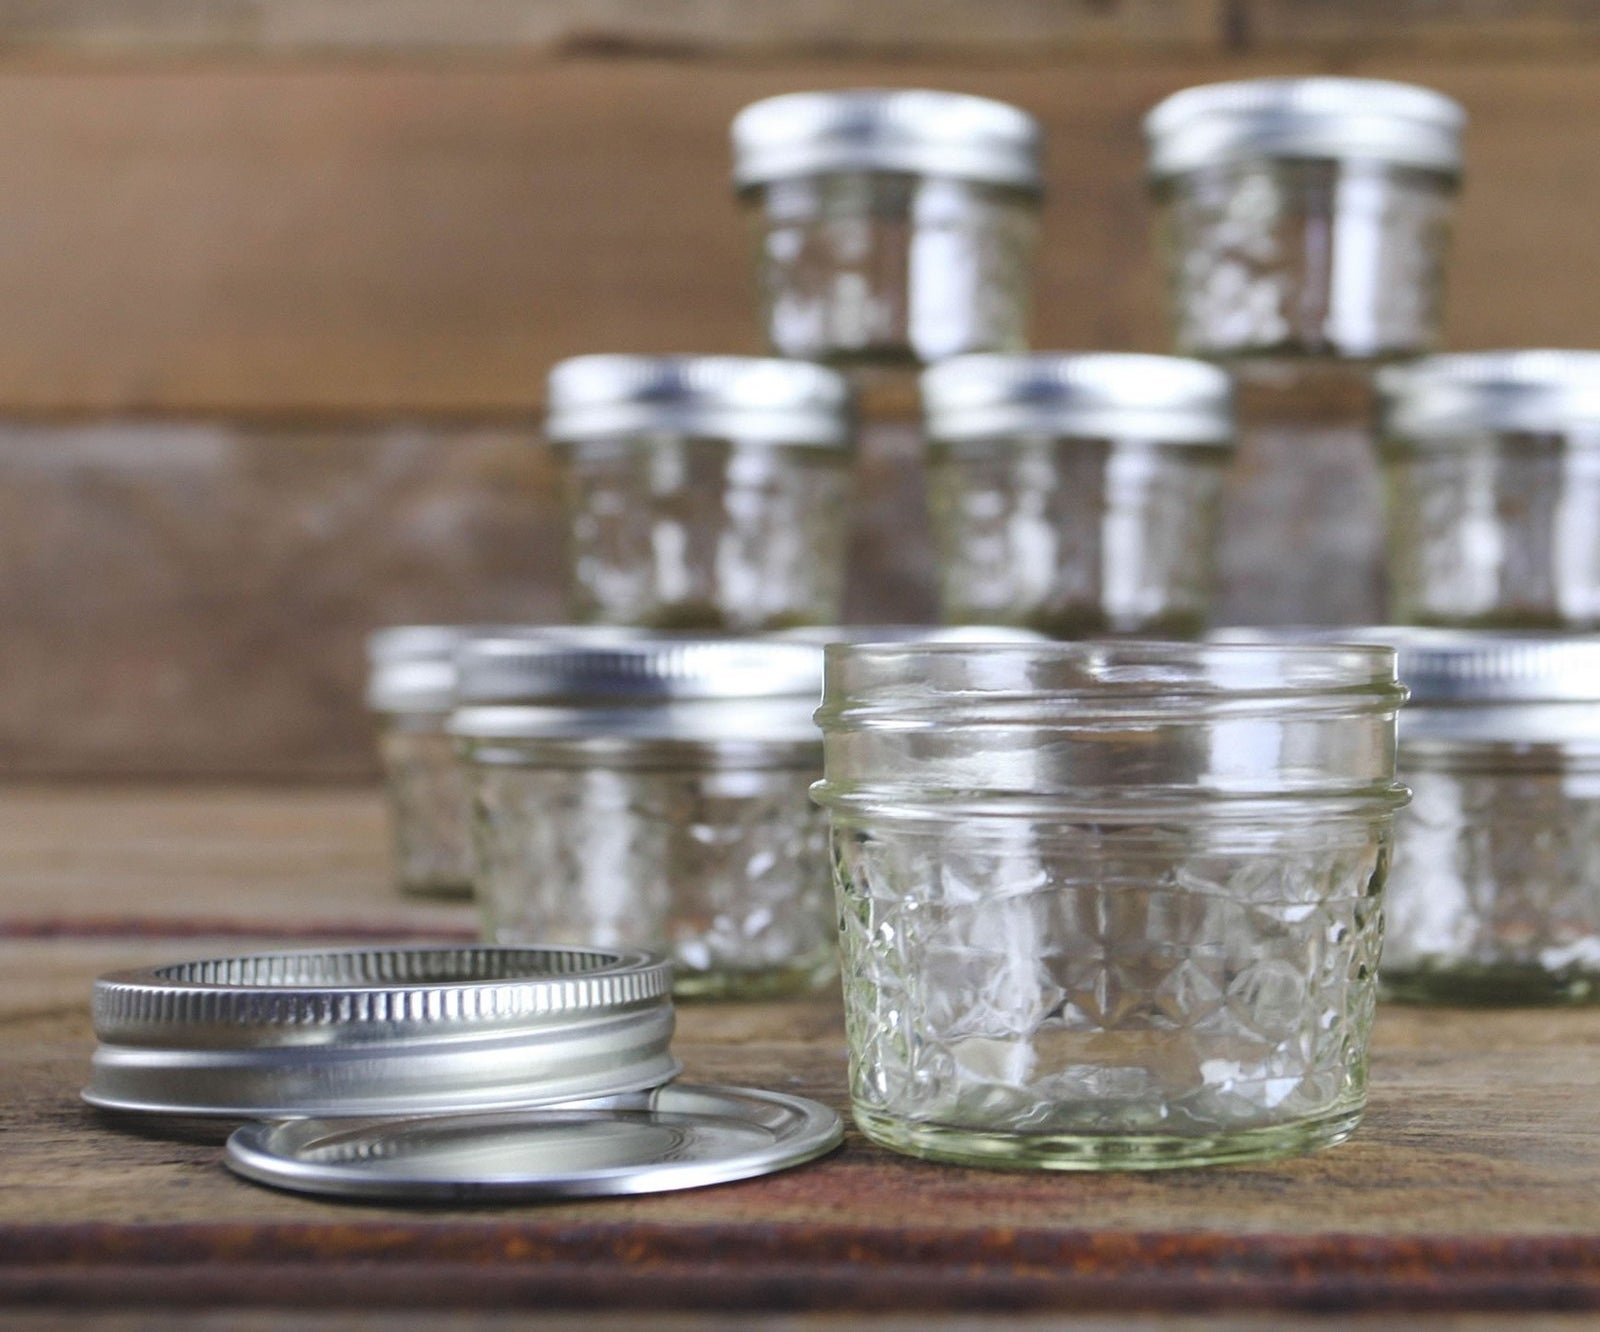 A 12-count of short glass jars with steel lids perfect for canning or preserving.